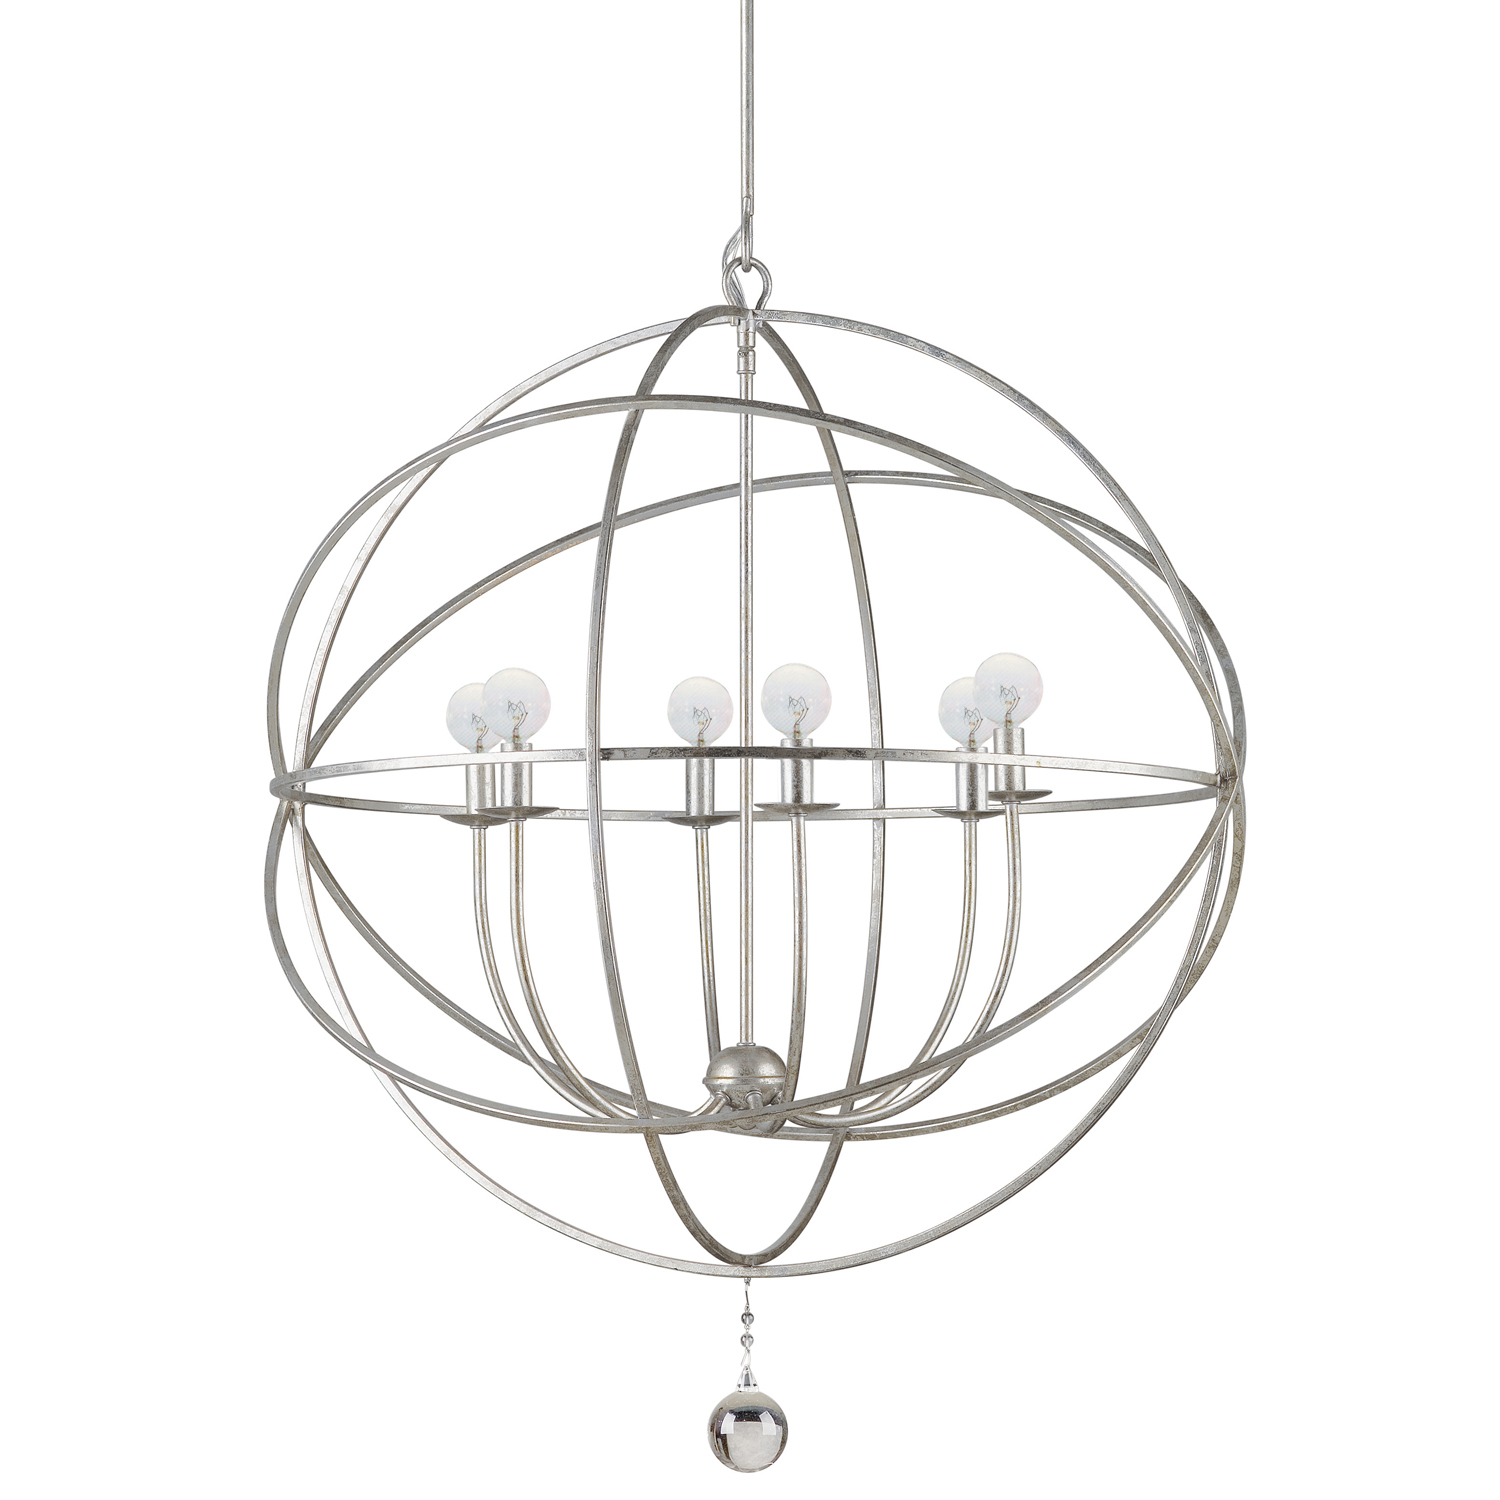 Eclectic lighting Vintage Thebeast Interior Design Eclectic Style Lighting For Kitchens reviewsratings